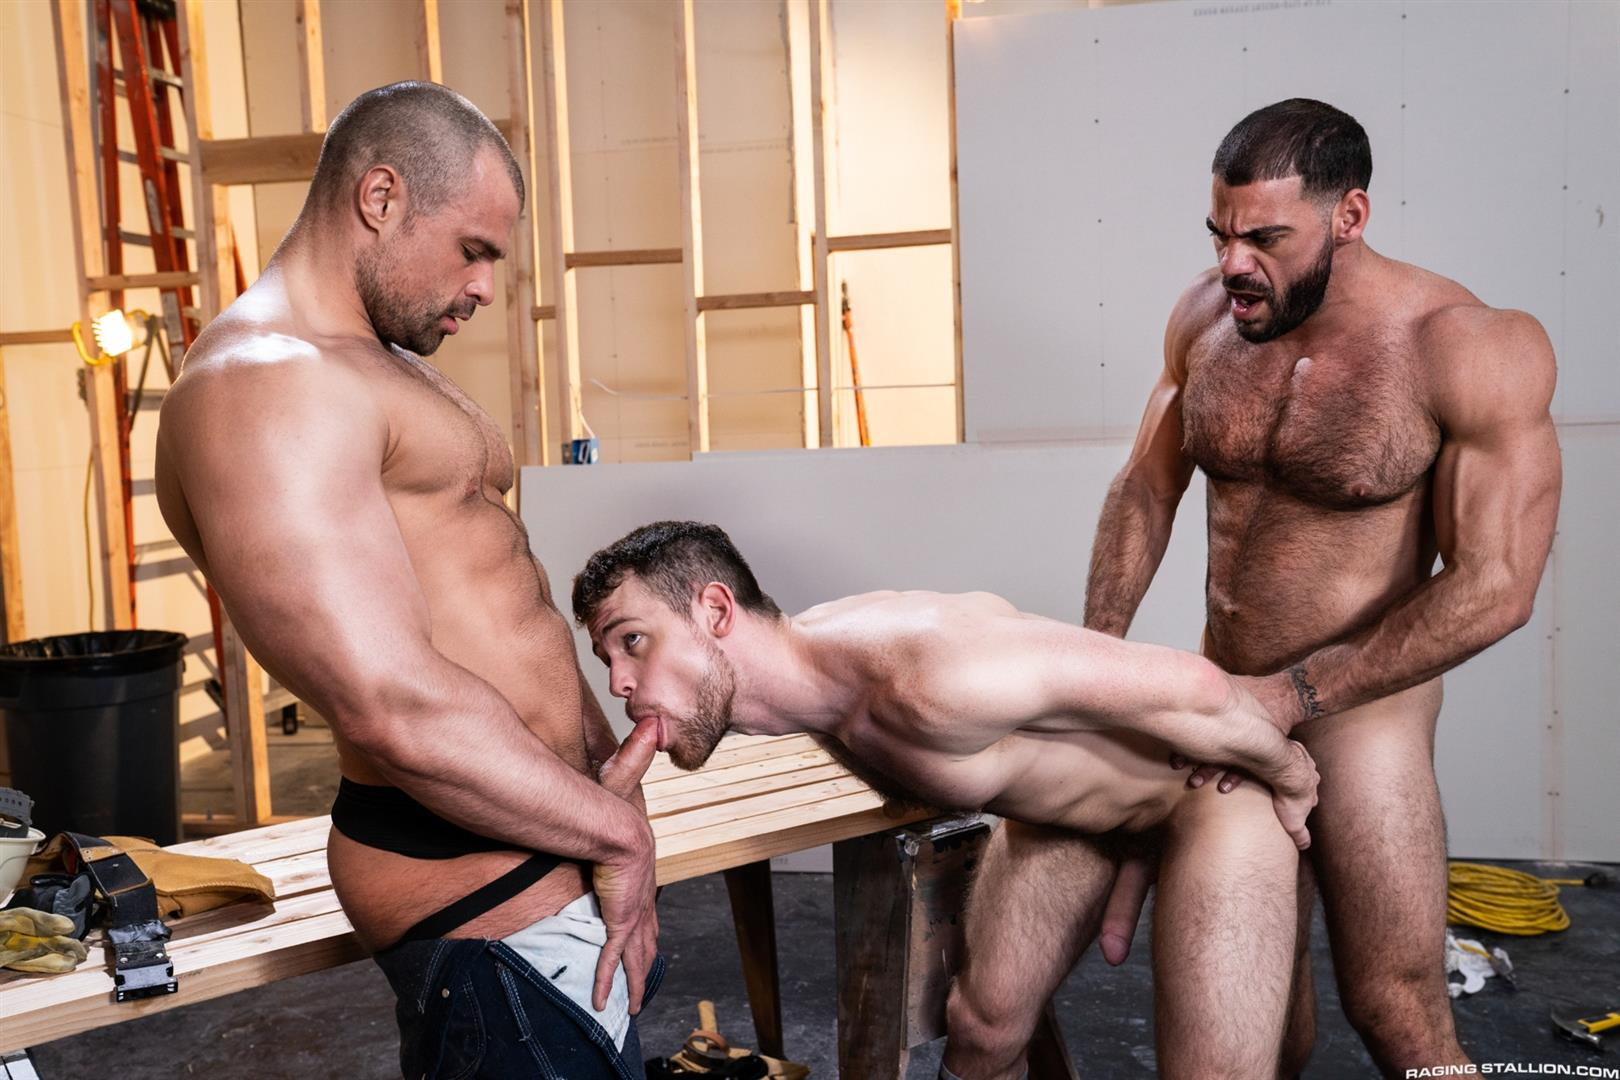 Raging-Stallion-Ricky-Larkin-and-Kurtis-Wolfe-and-Jaxx-Thanatos-Hairy-Muscle-Bareback-09 Hairy Muscle Hunks Ricky Larkin, Kurtis Wolfe and Jaxx Thanatos Bareback Fucking On The Job Site